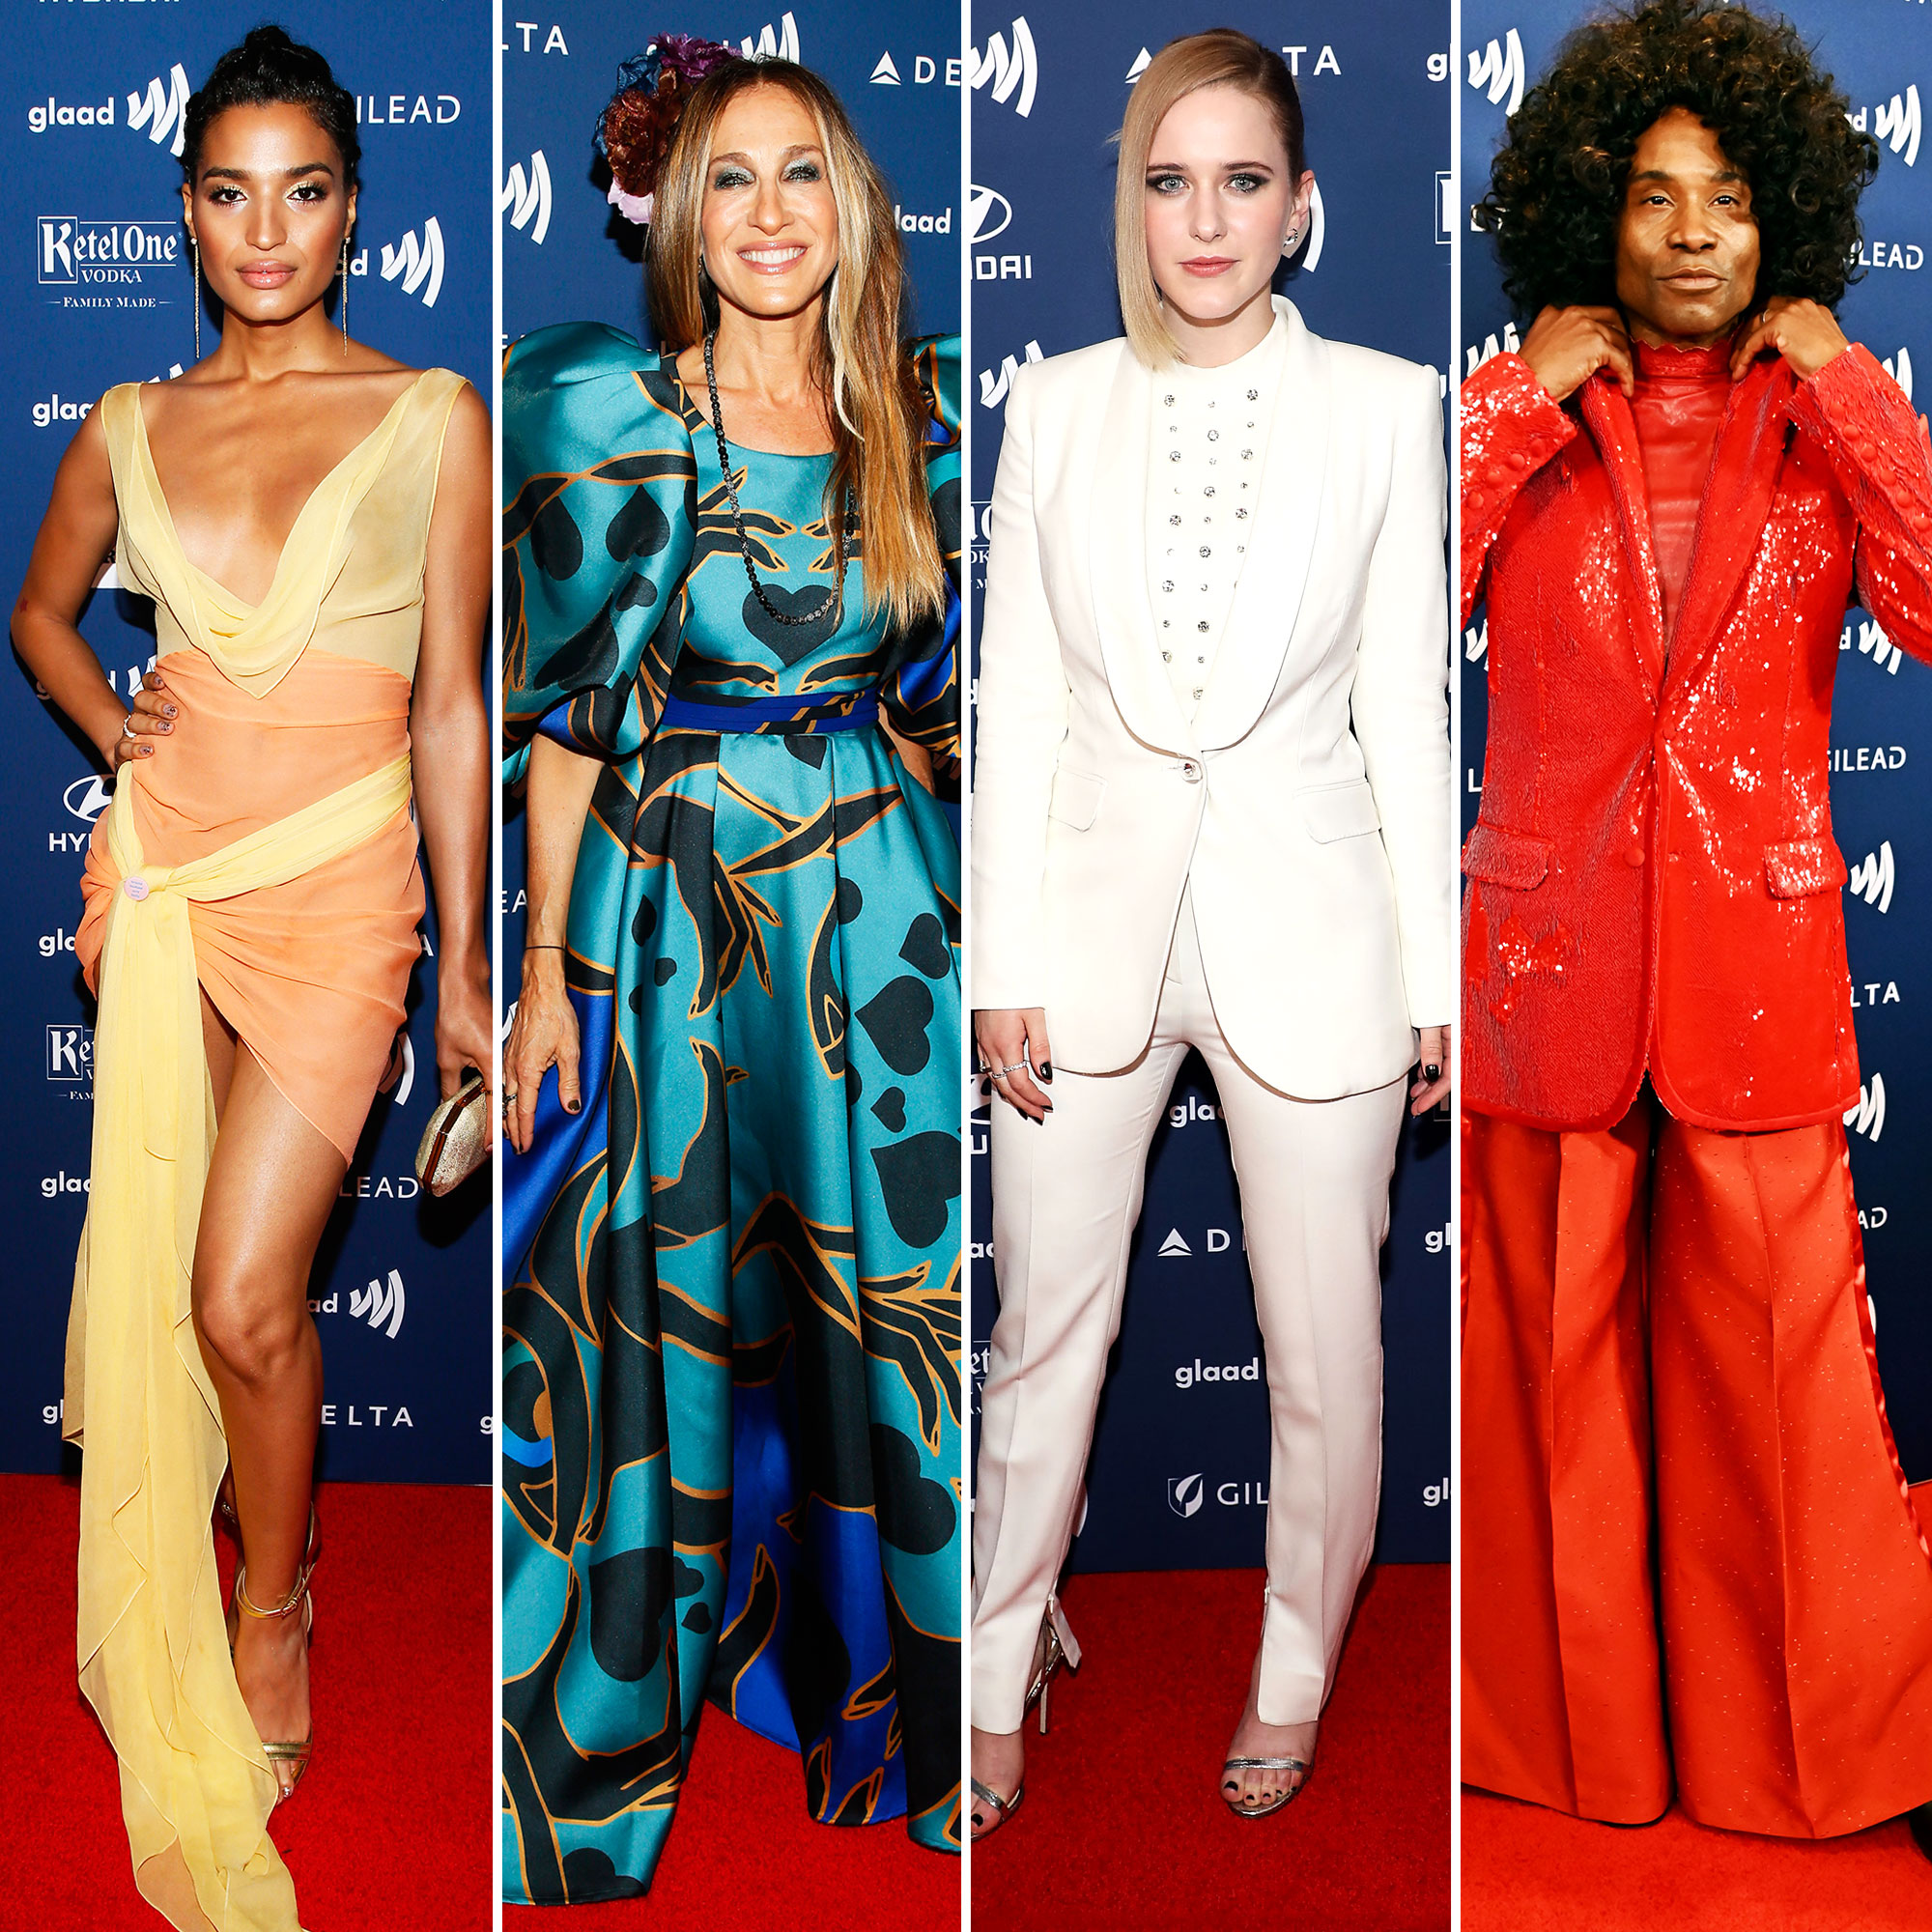 See the Stars at the GLAAD Awards Indya Moore, Sarah Jessica Parker, Rachel Brosnahan, and Billy Porter - Indya Moore, Sarah Jessica Parker, Rachel Brosnahan, and Billy Porter